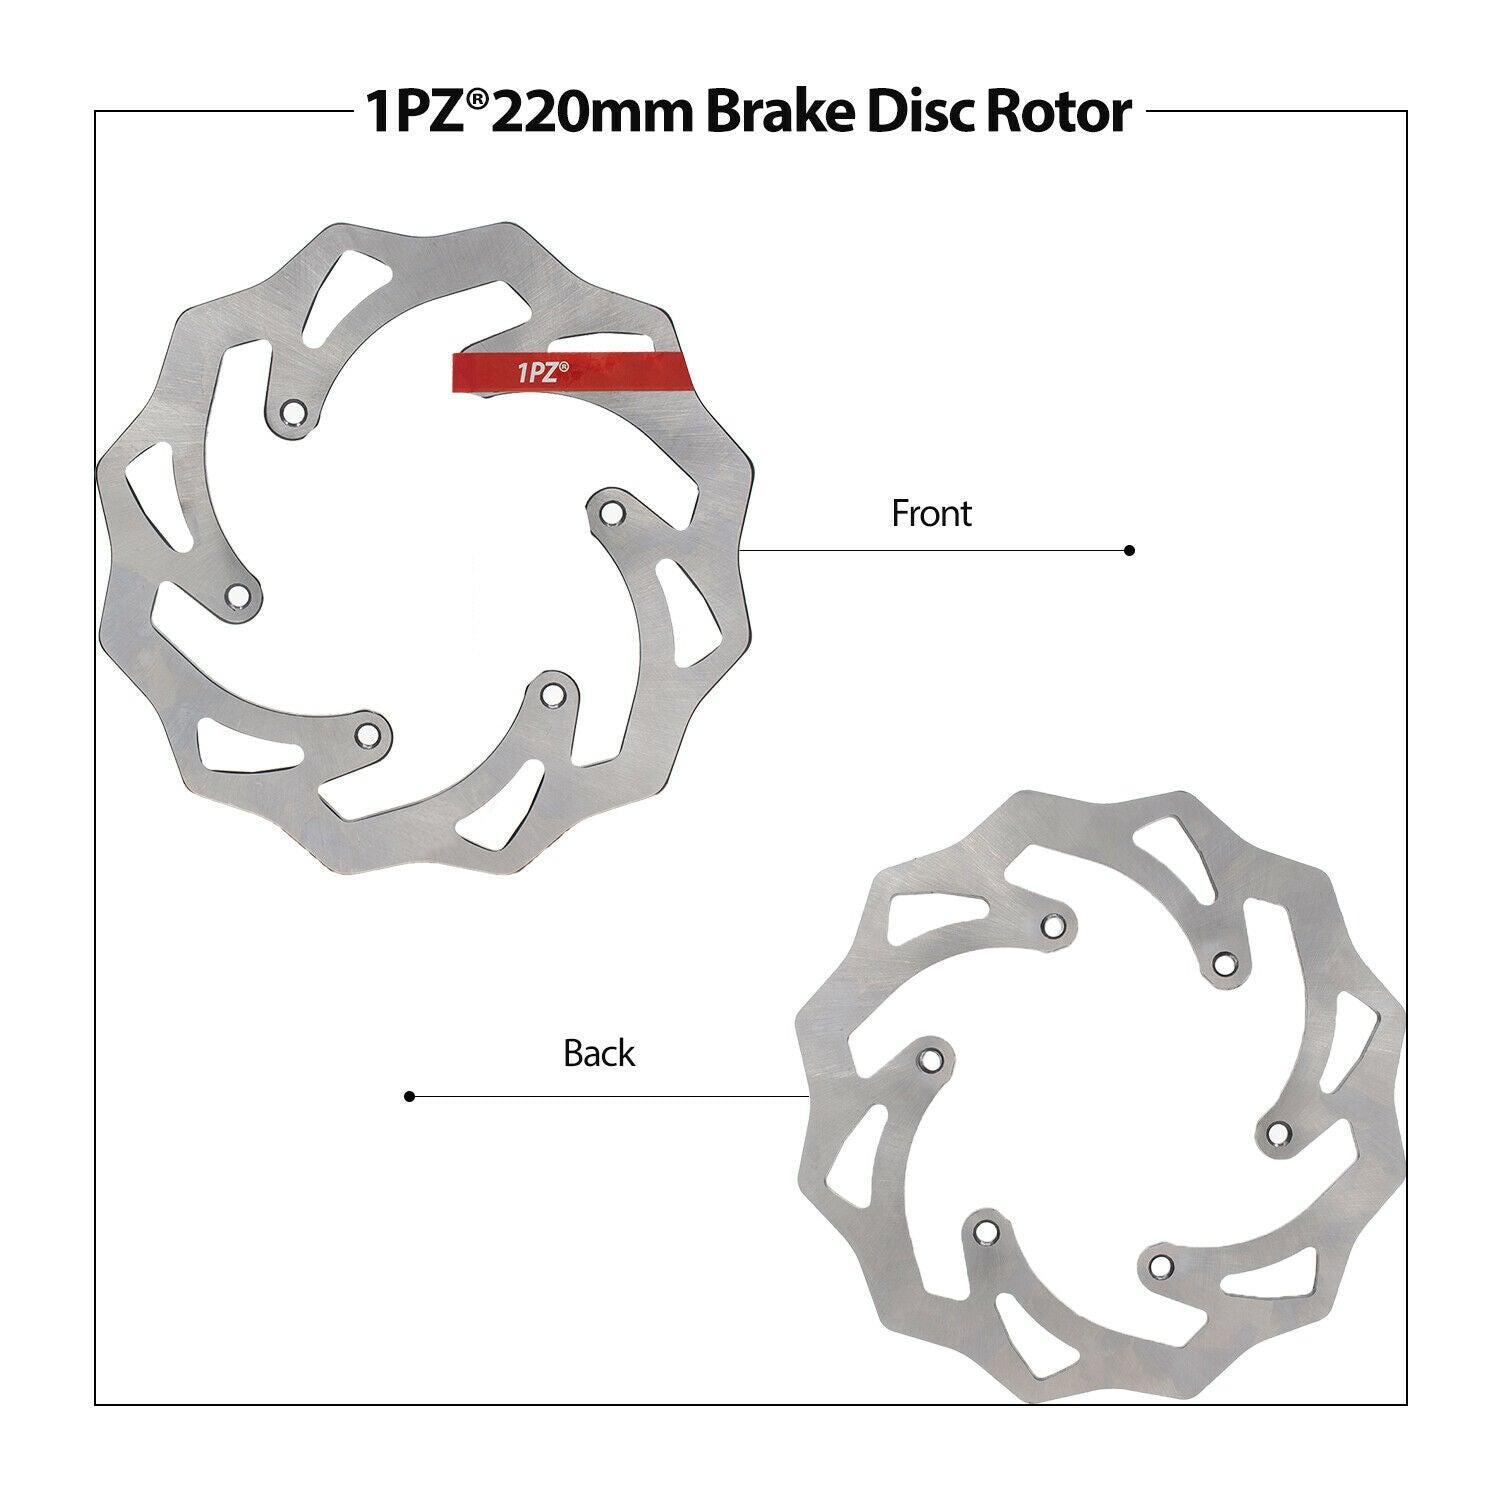 Rear Brake Disc Rotor 220mm for Husaberg Husqvarna KTM 125 200 250 300 350 450